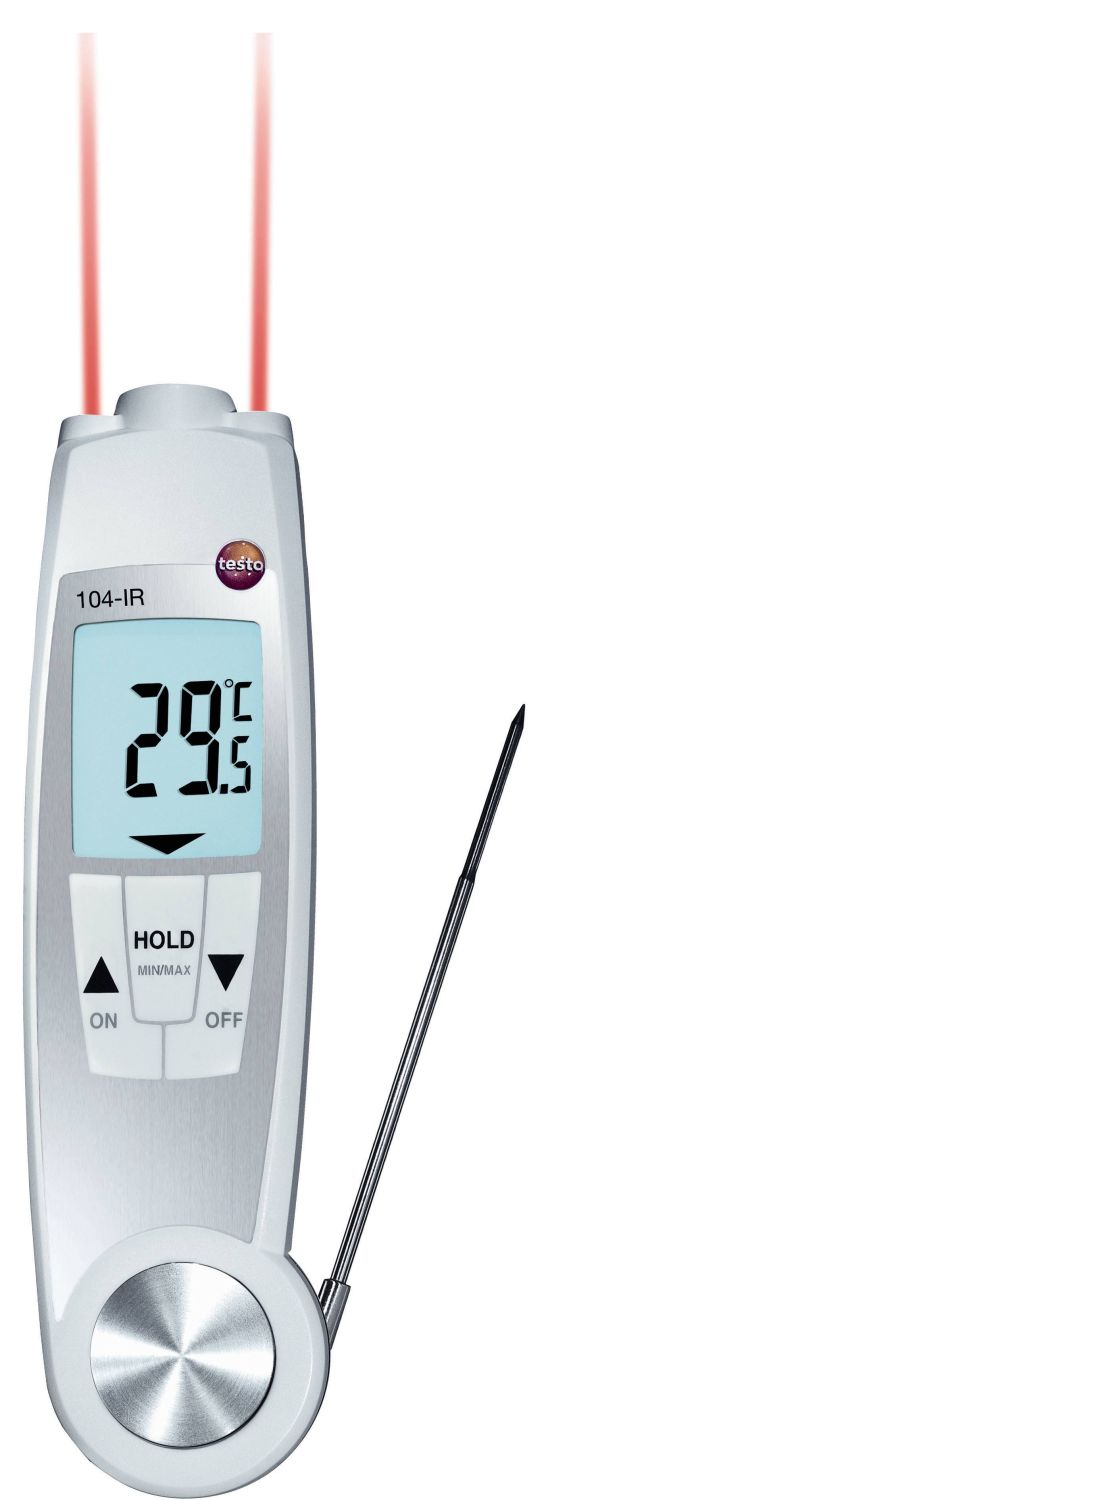 testo 104-IR temperatuur meetinstrument